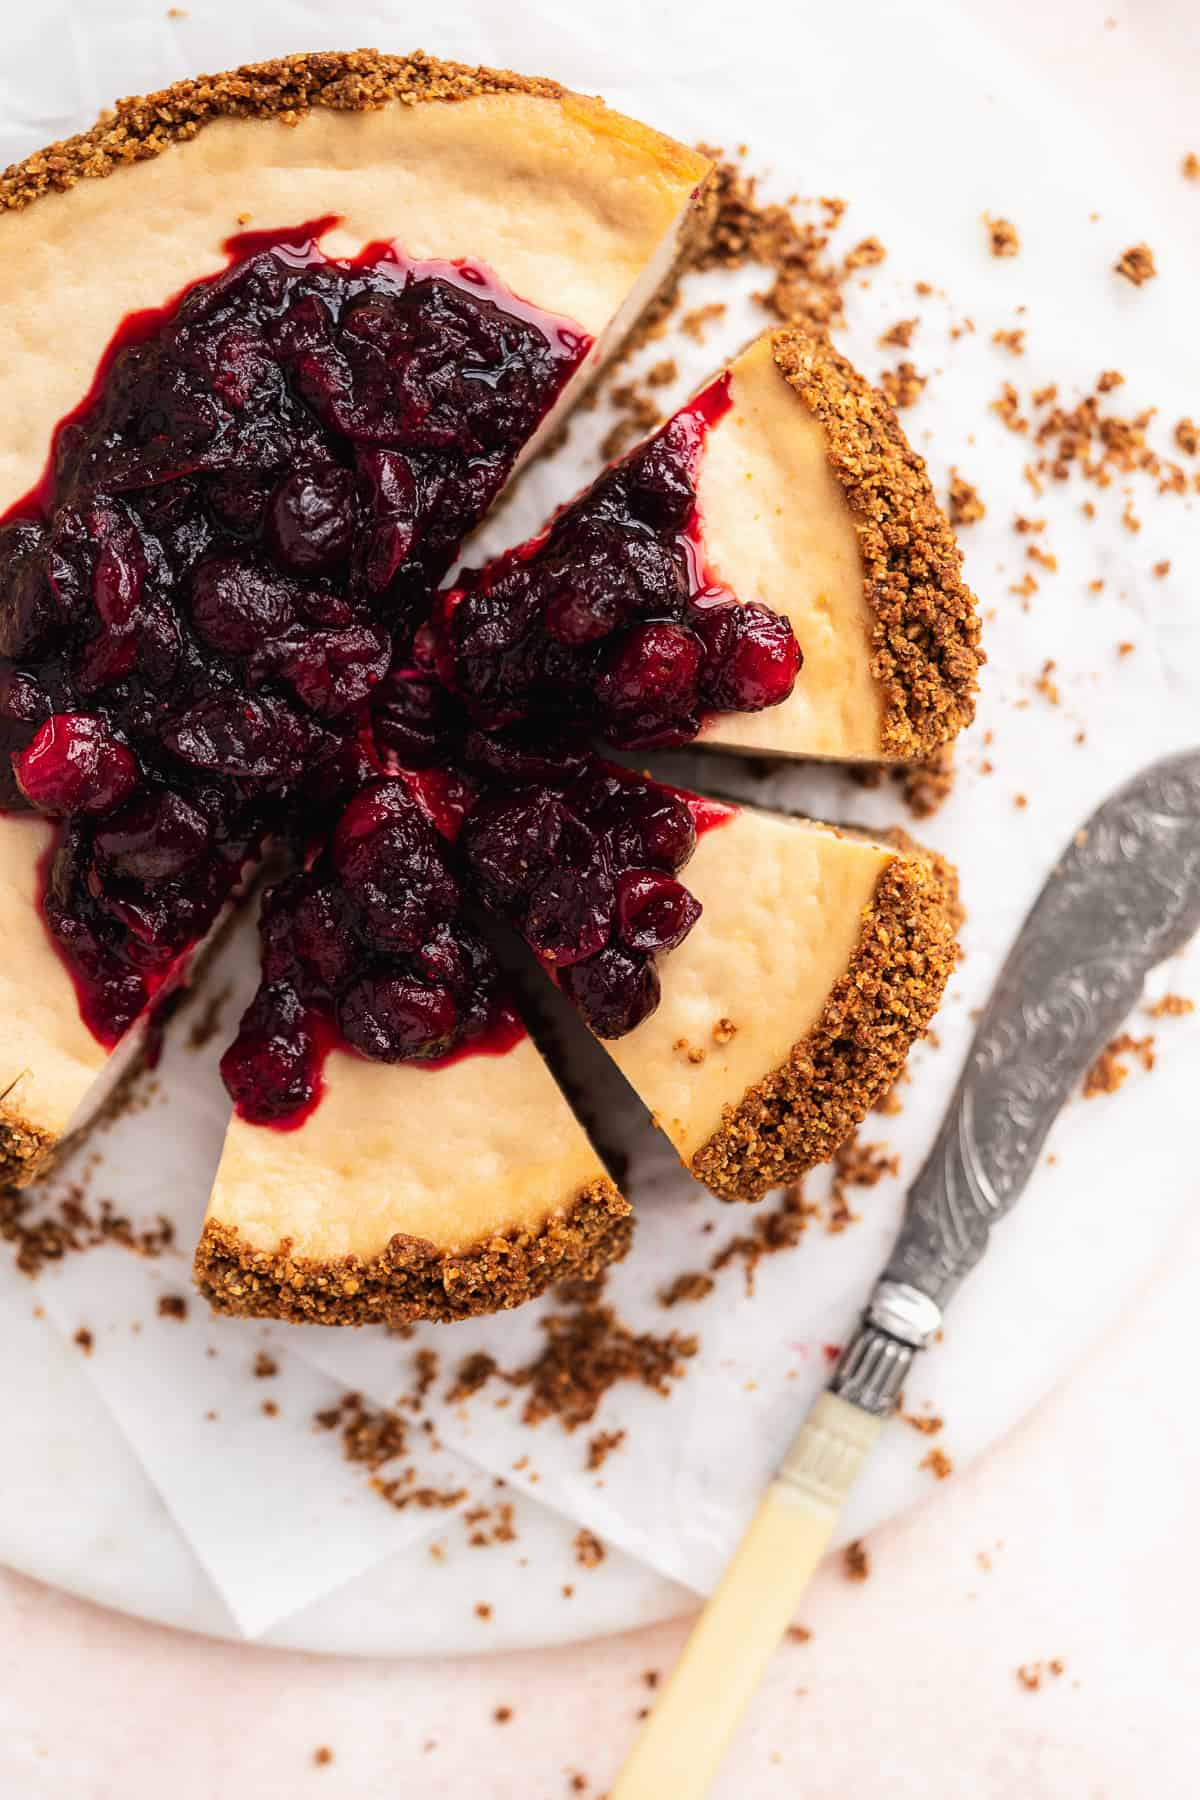 Overhead photo of the Vegan Baked Cranberry Cheesecake with Graham Cracker Crust with 3 slices cut and separated from the whole cake.  Silver pearl handled knife lays nearby.